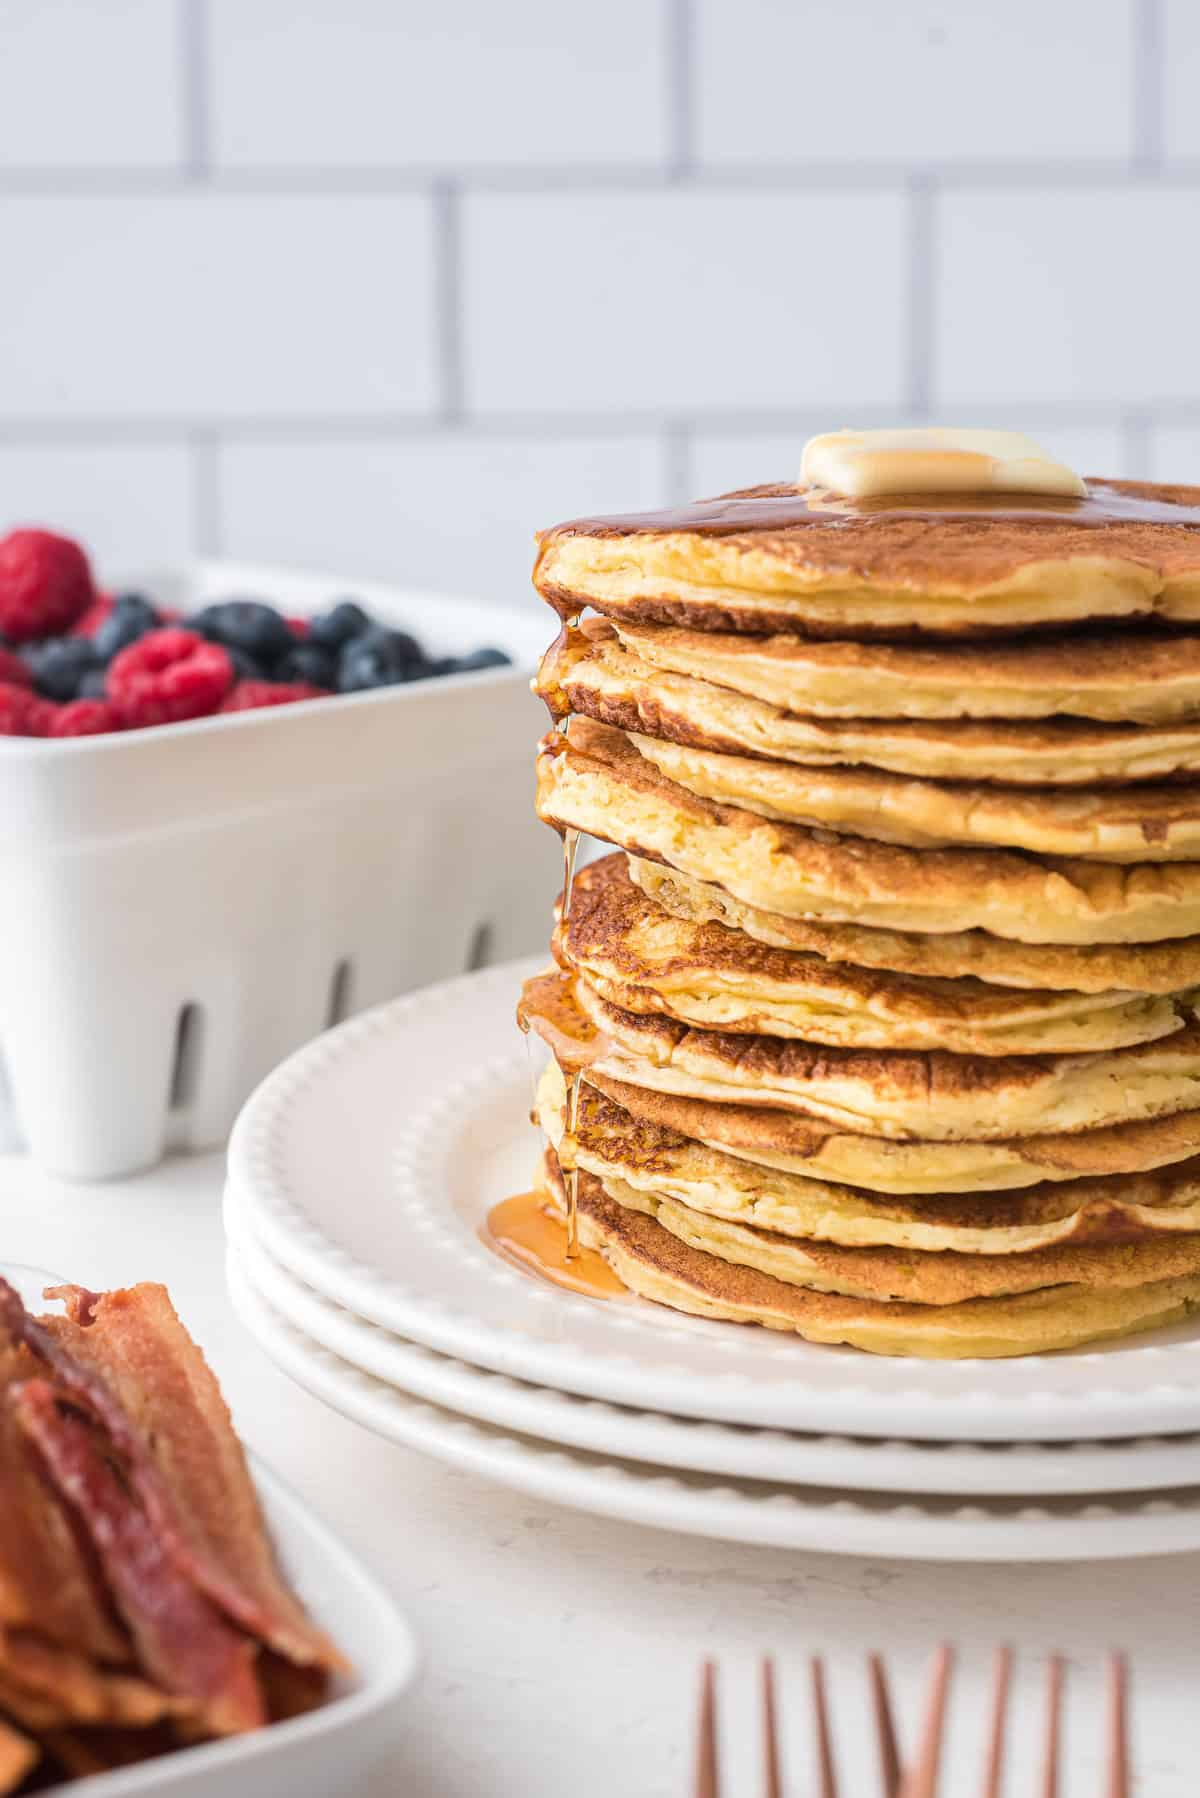 Very tall stack of pancakes topped with butter and dripping with maple syrup.